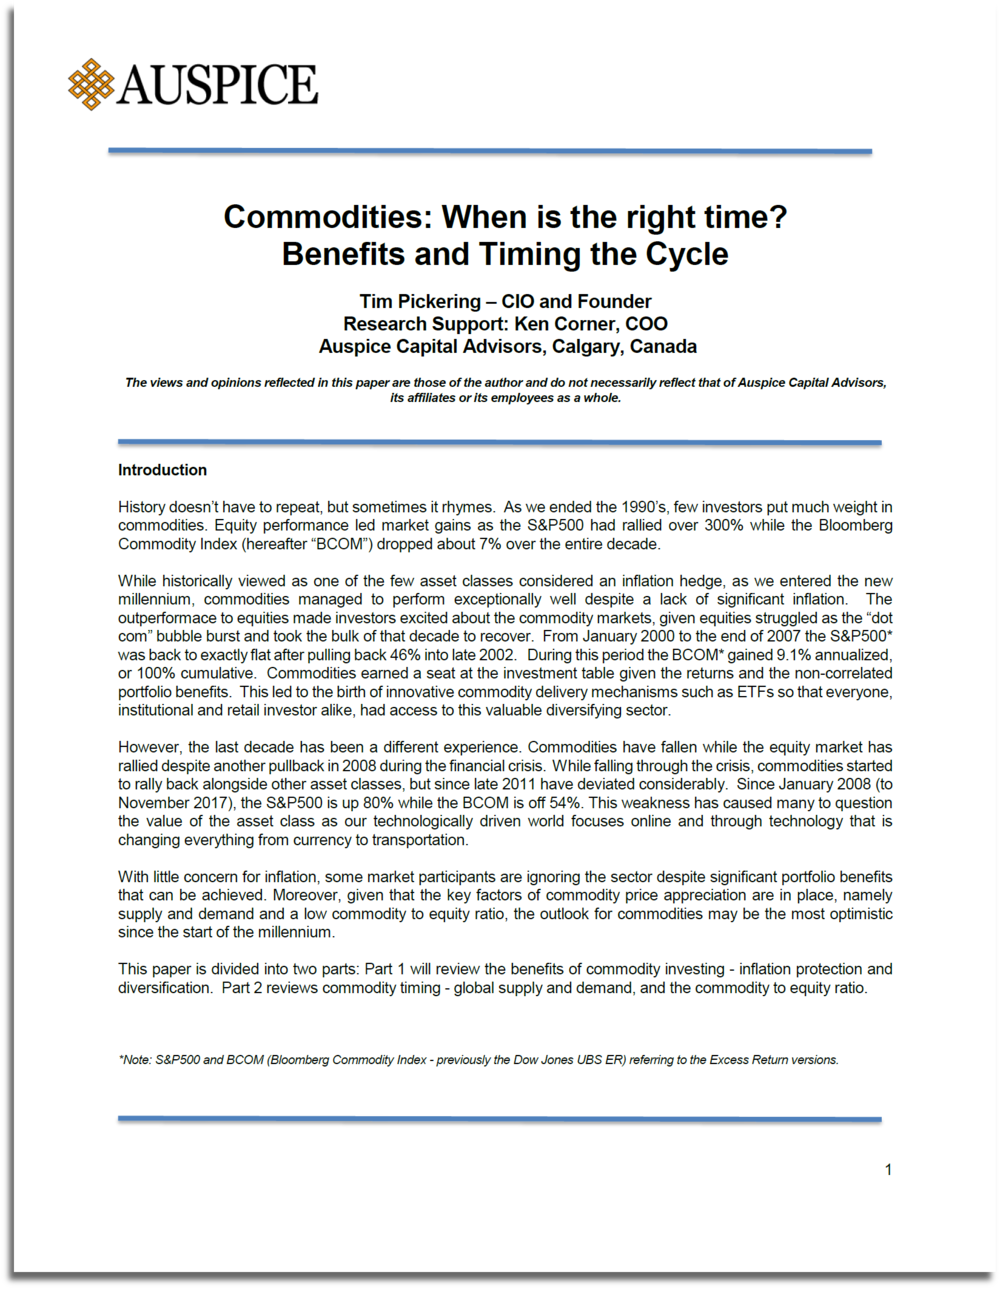 Commodities Update ending 2018: When is the right time? Benefits and Timing the Cycle